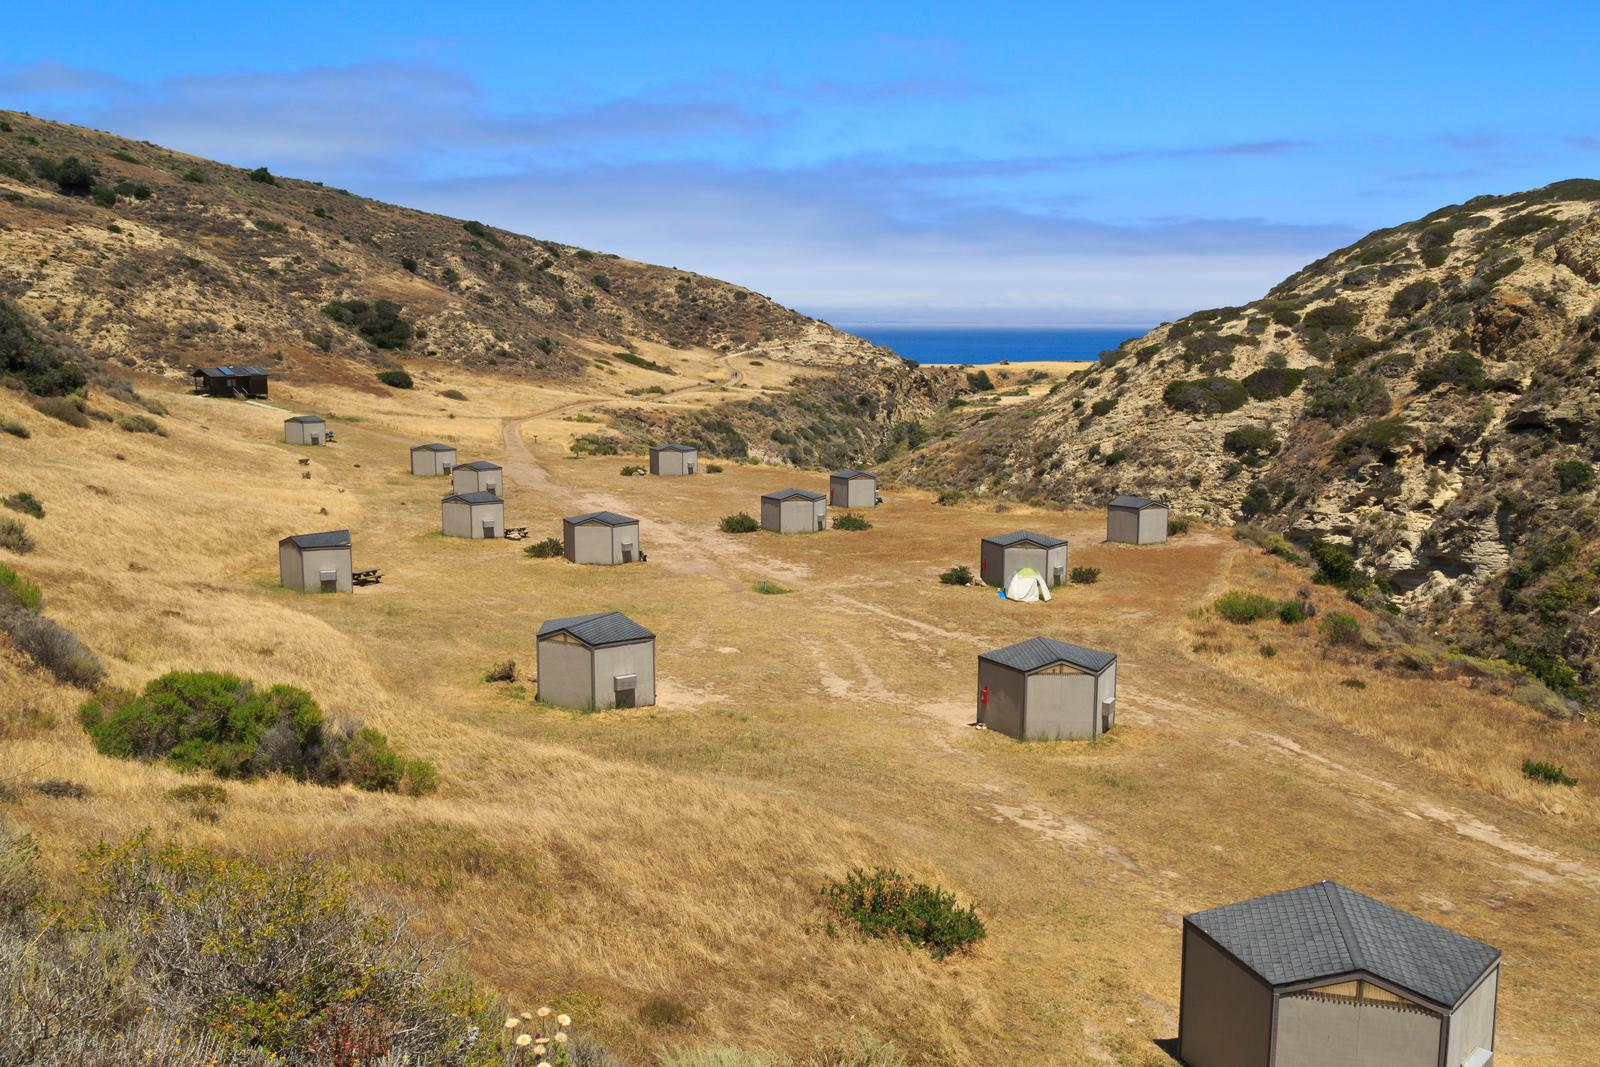 Eight foot tall wind shelters on a dry, grassy terrace overlooking the ocean. Campground, Santa Rosa Island